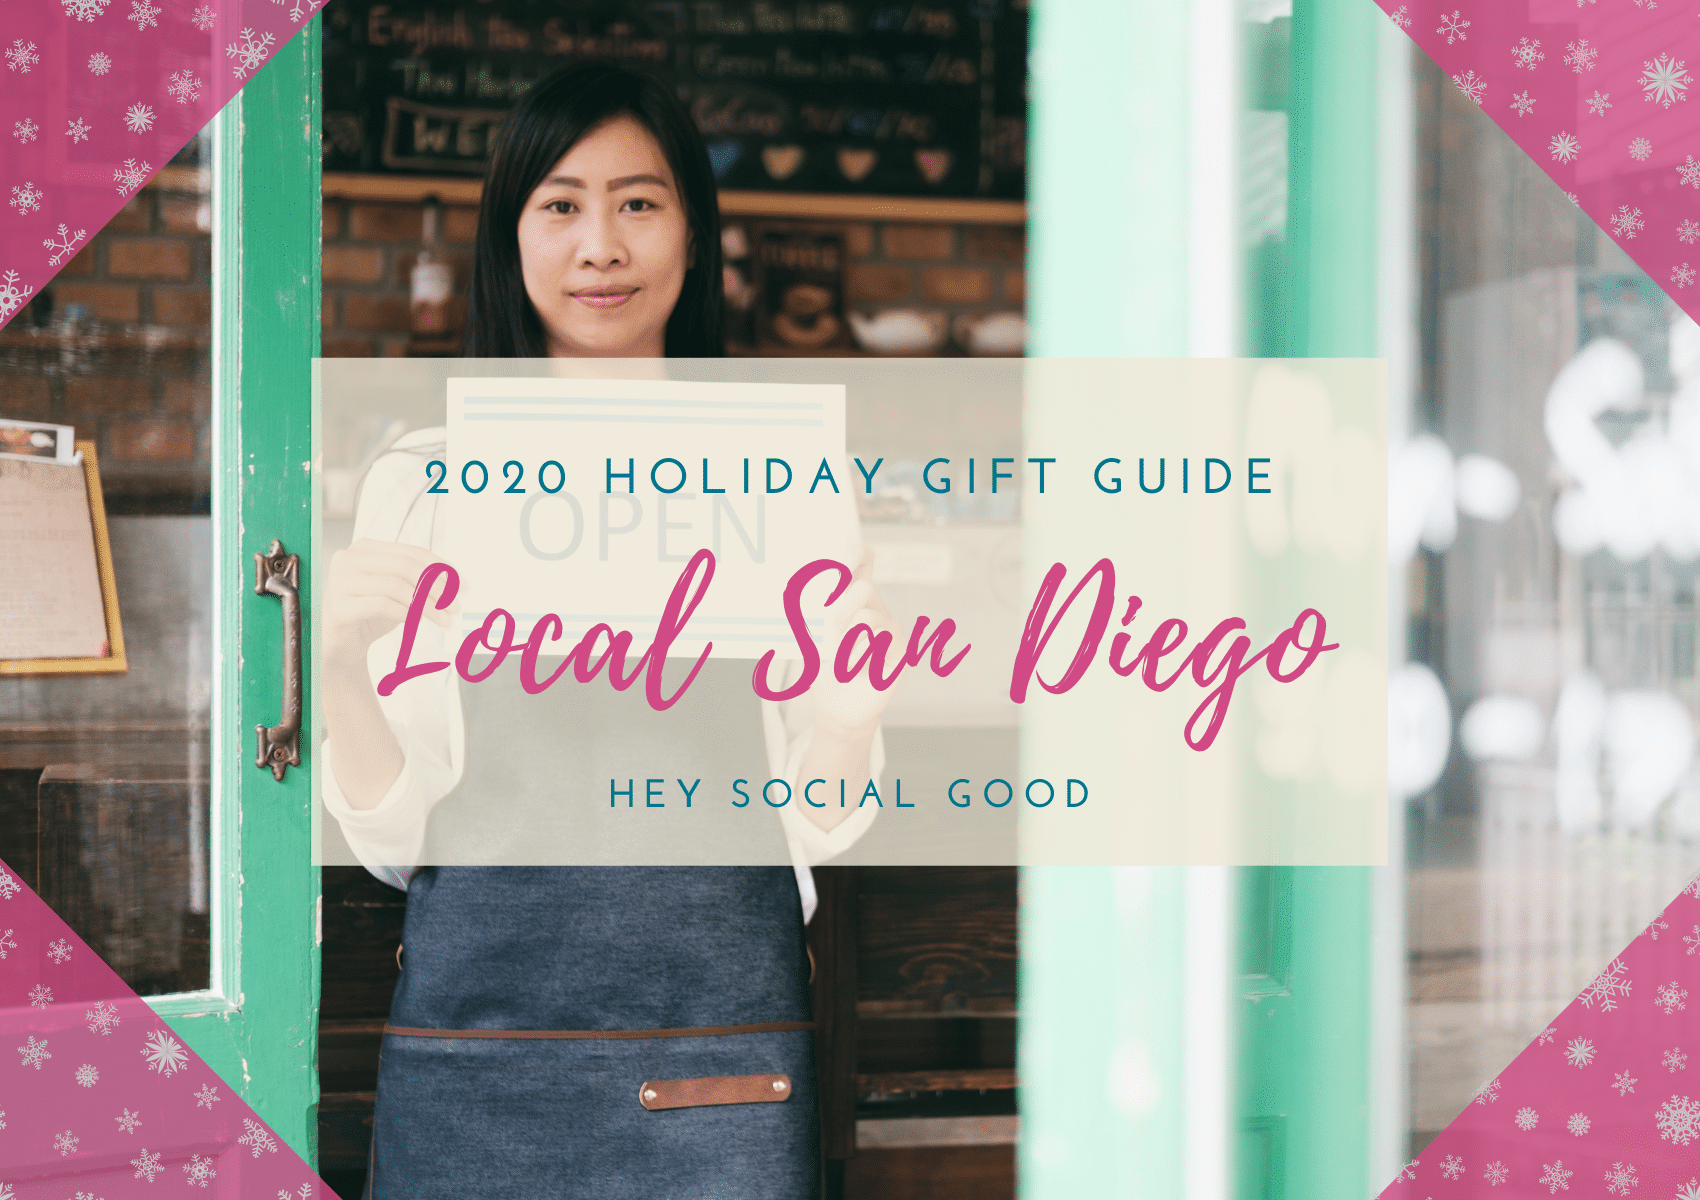 Sustainable and Ethical San Diego Holiday Gift Guide